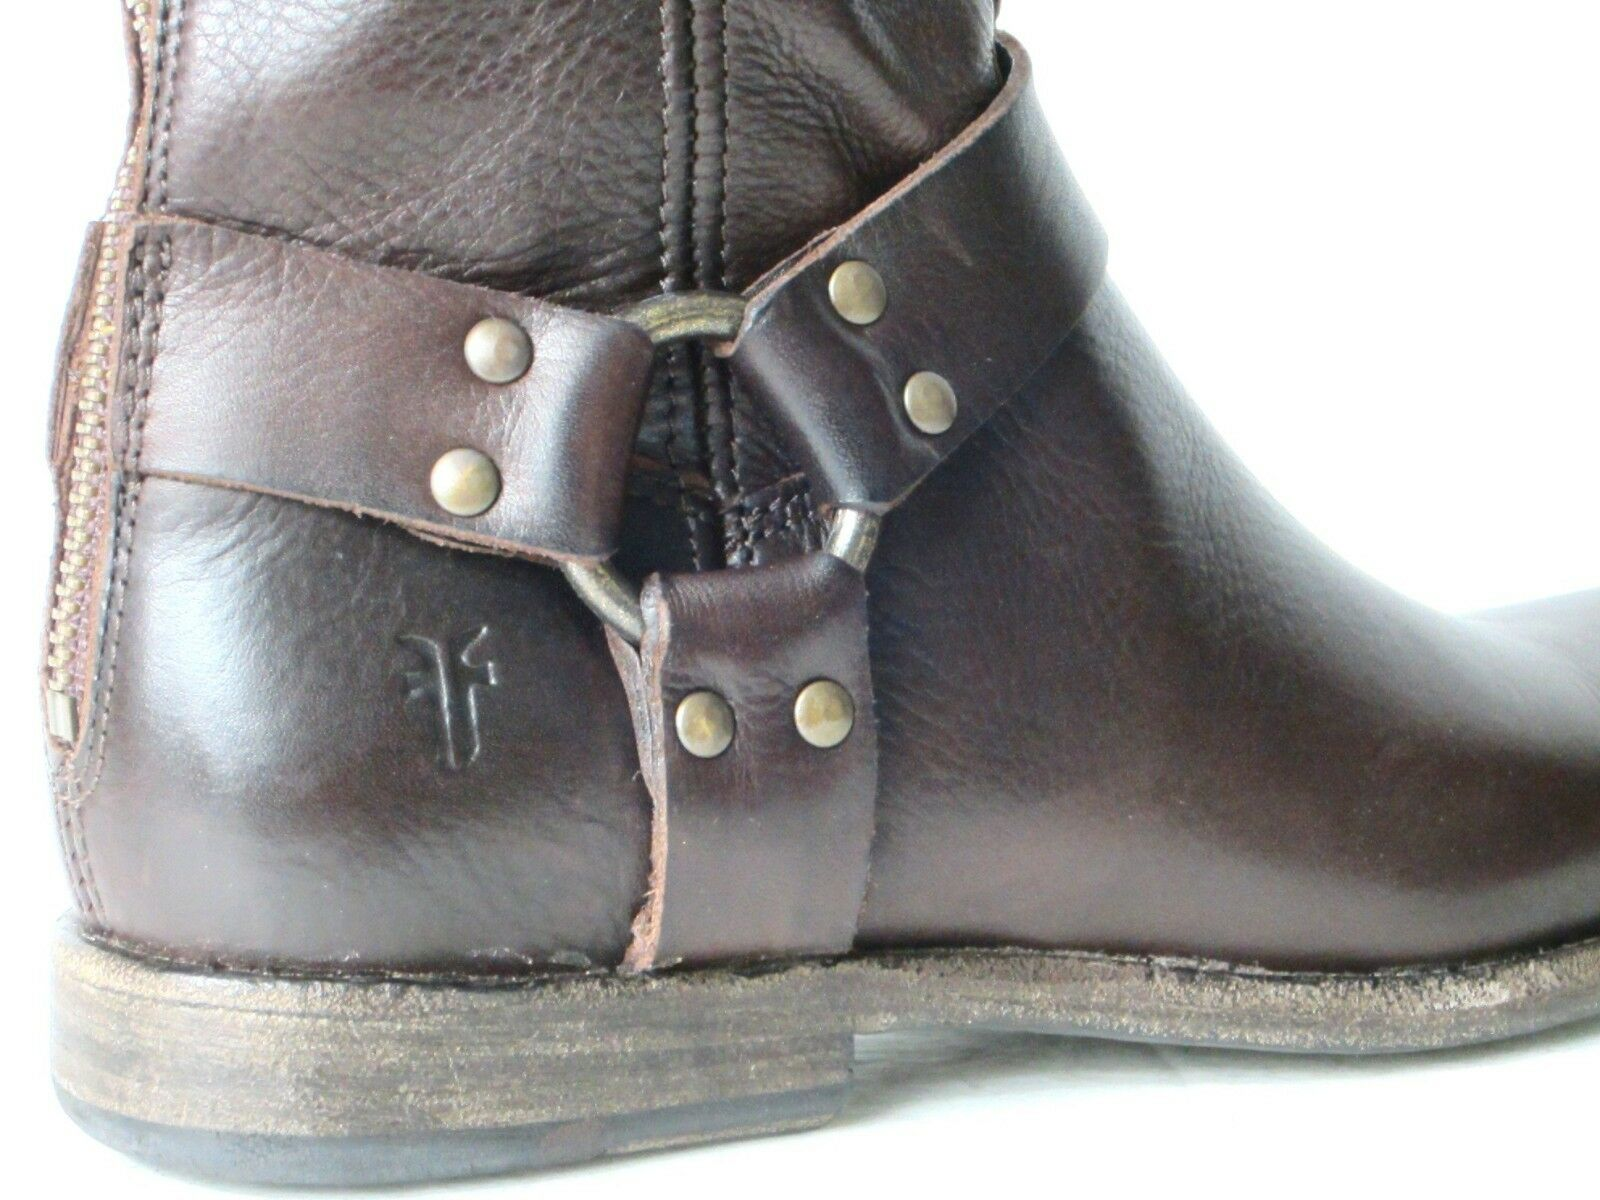 FRYE BOOTS Phillip Harness Tall Dark Brown Soft Soft Soft Leather Boots 76850 SZ 6.5  358 5742ab